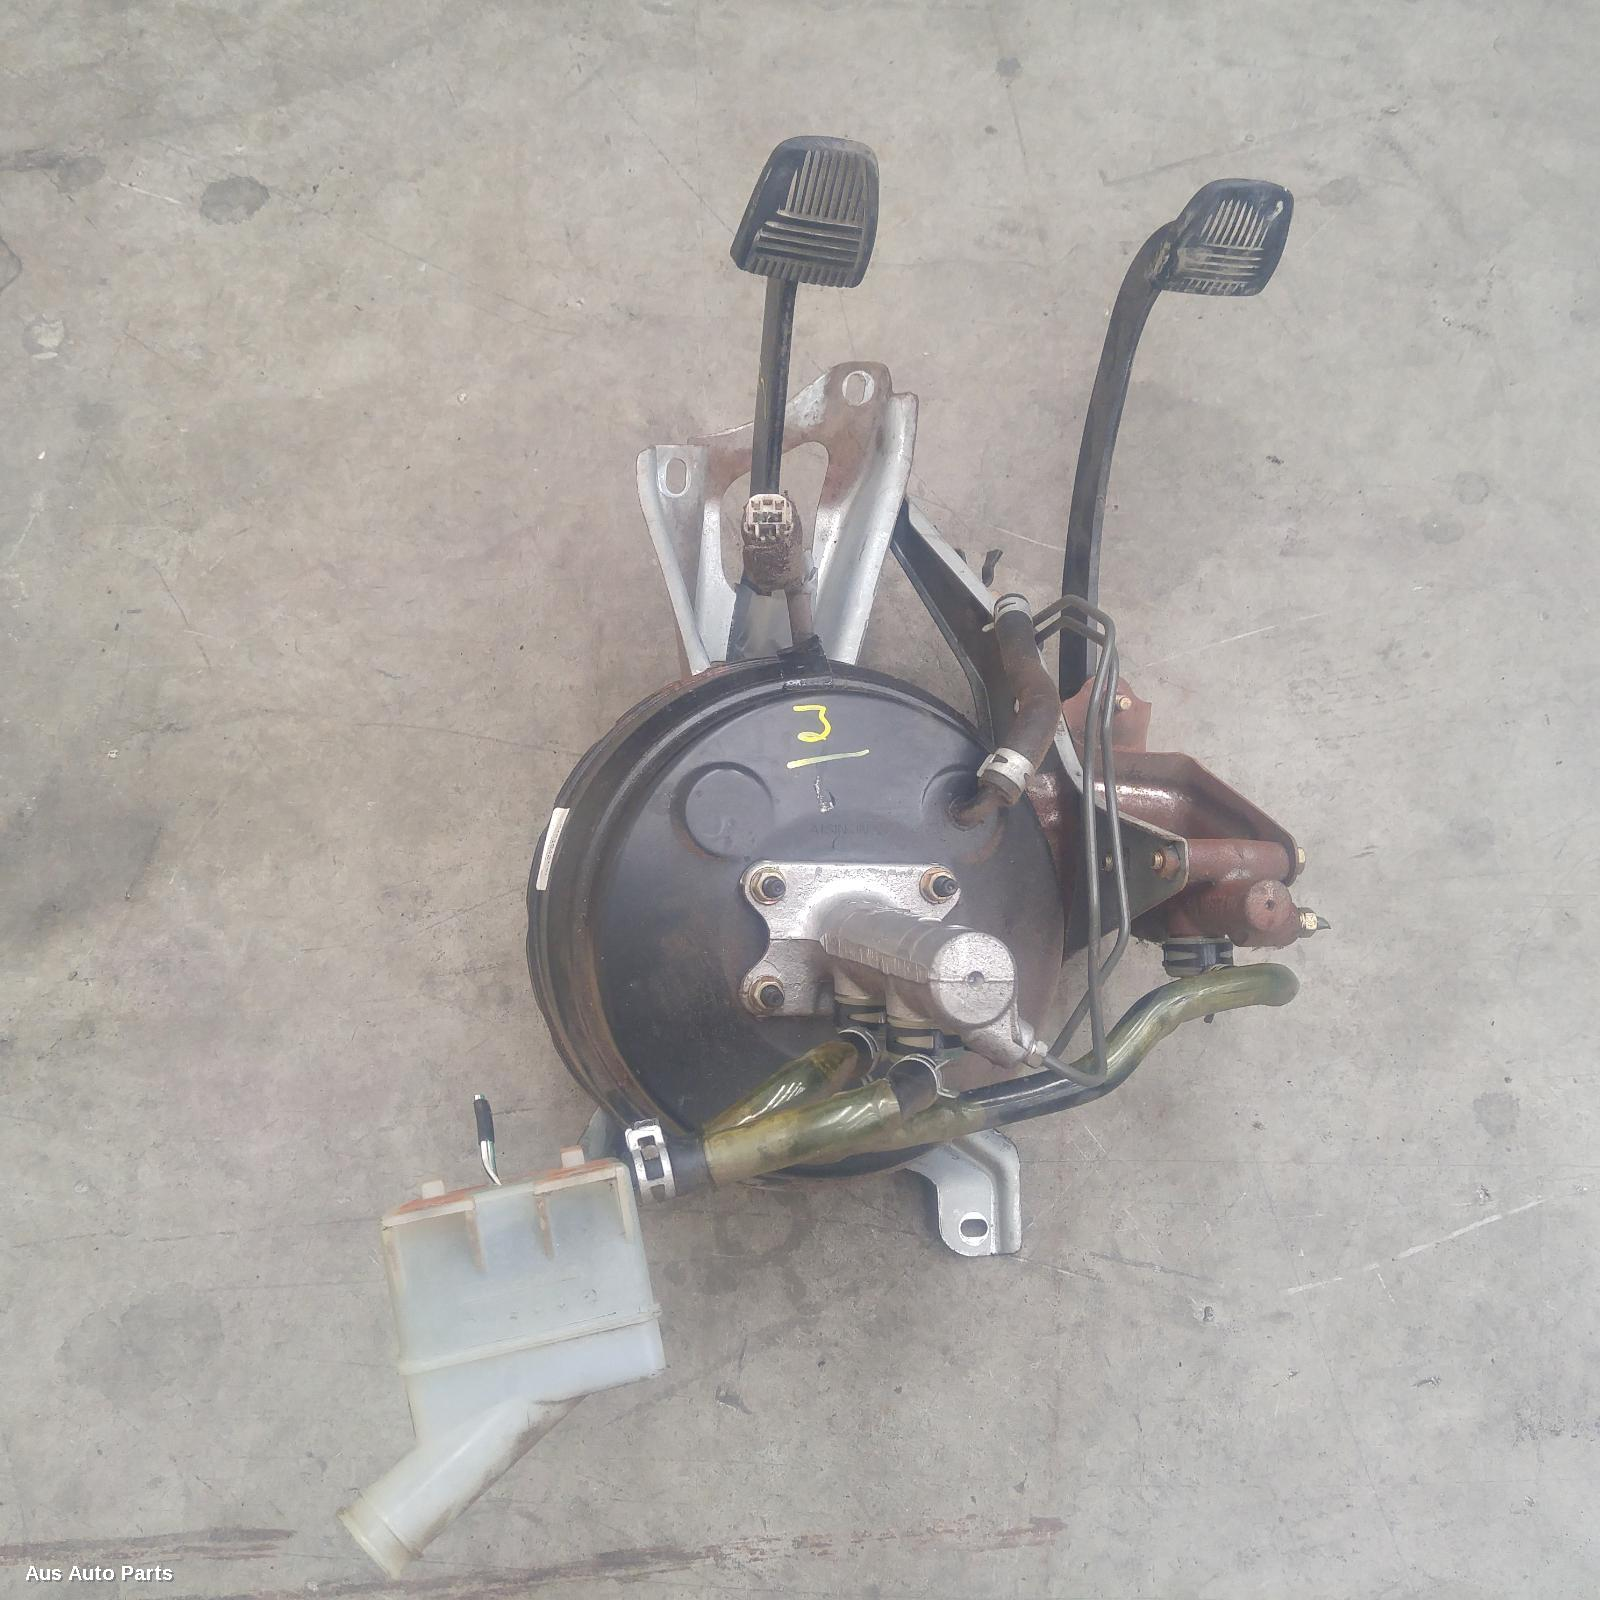 Result Brake Booster for Toyota Hiace|Aus Auto Parts(1011)